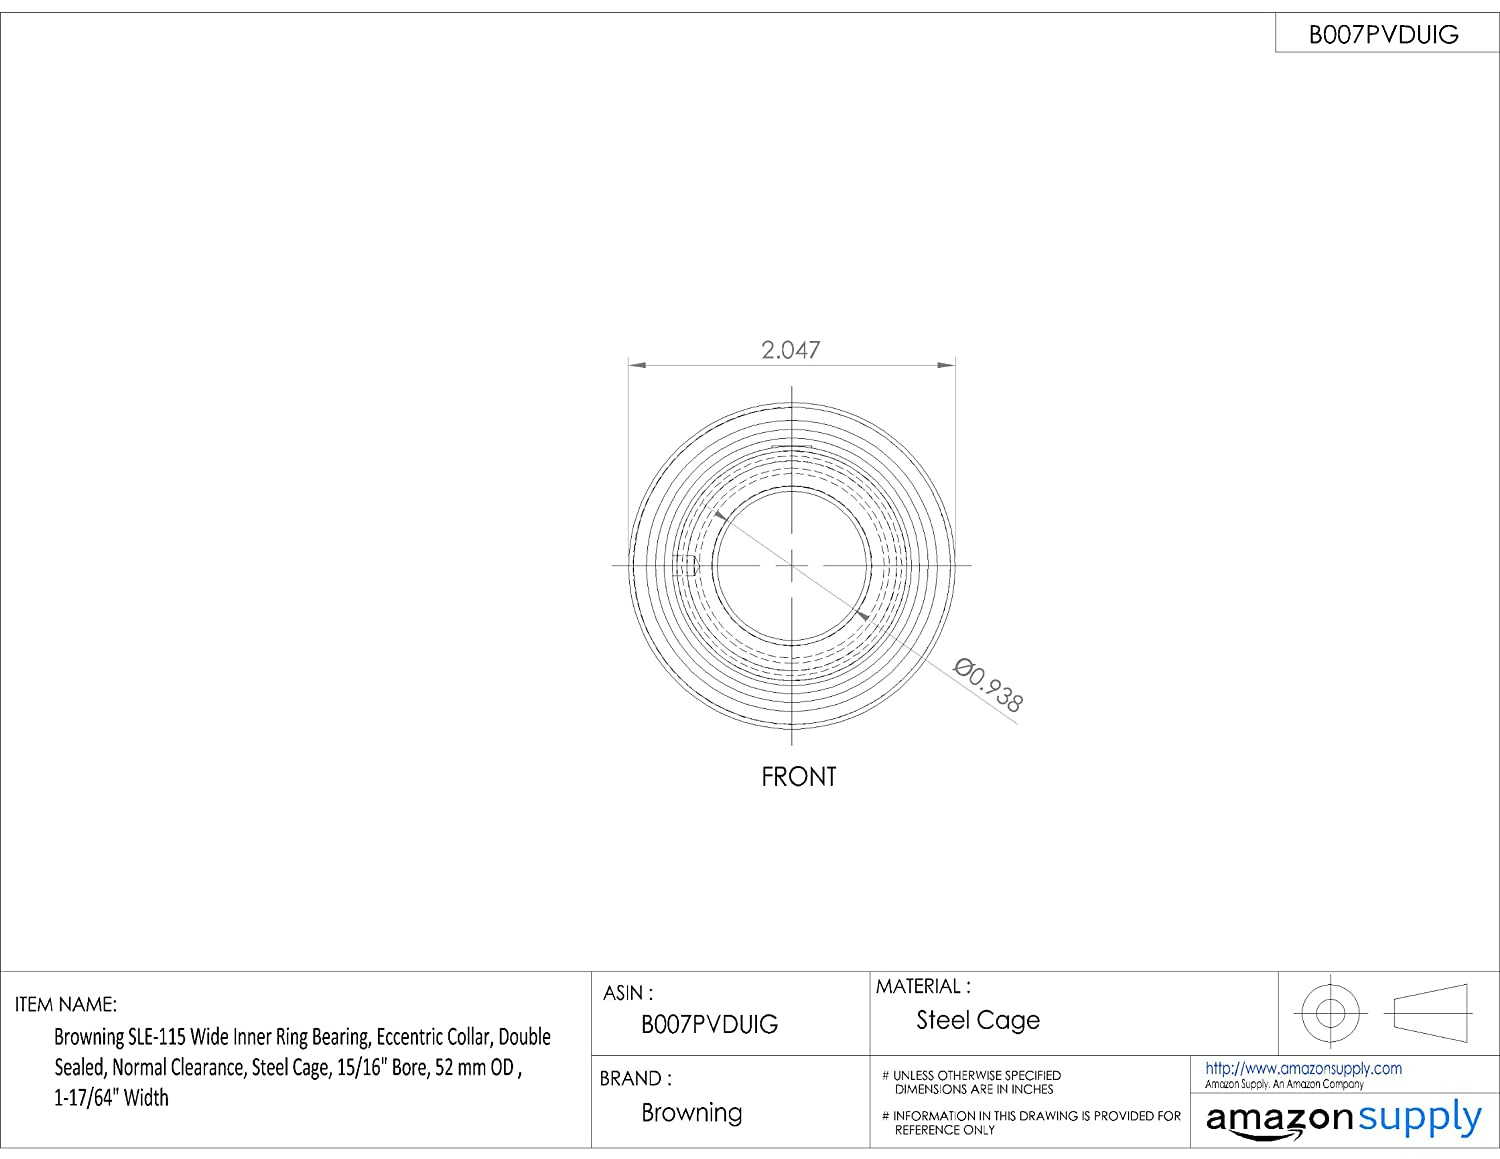 Sur-Seal Inc. 3-1//2 ID 3-1//2 ID 3-3//4 OD Sterling Seal ORSIL238x100 Number-238 Standard Silicone O-Ring has Excellent Resistance to Oxygen Vinyl Methyl Silicone 3-3//4 OD Pack of 100 Ozone and Sunlight 70 Durometer Hardness Pack of 100